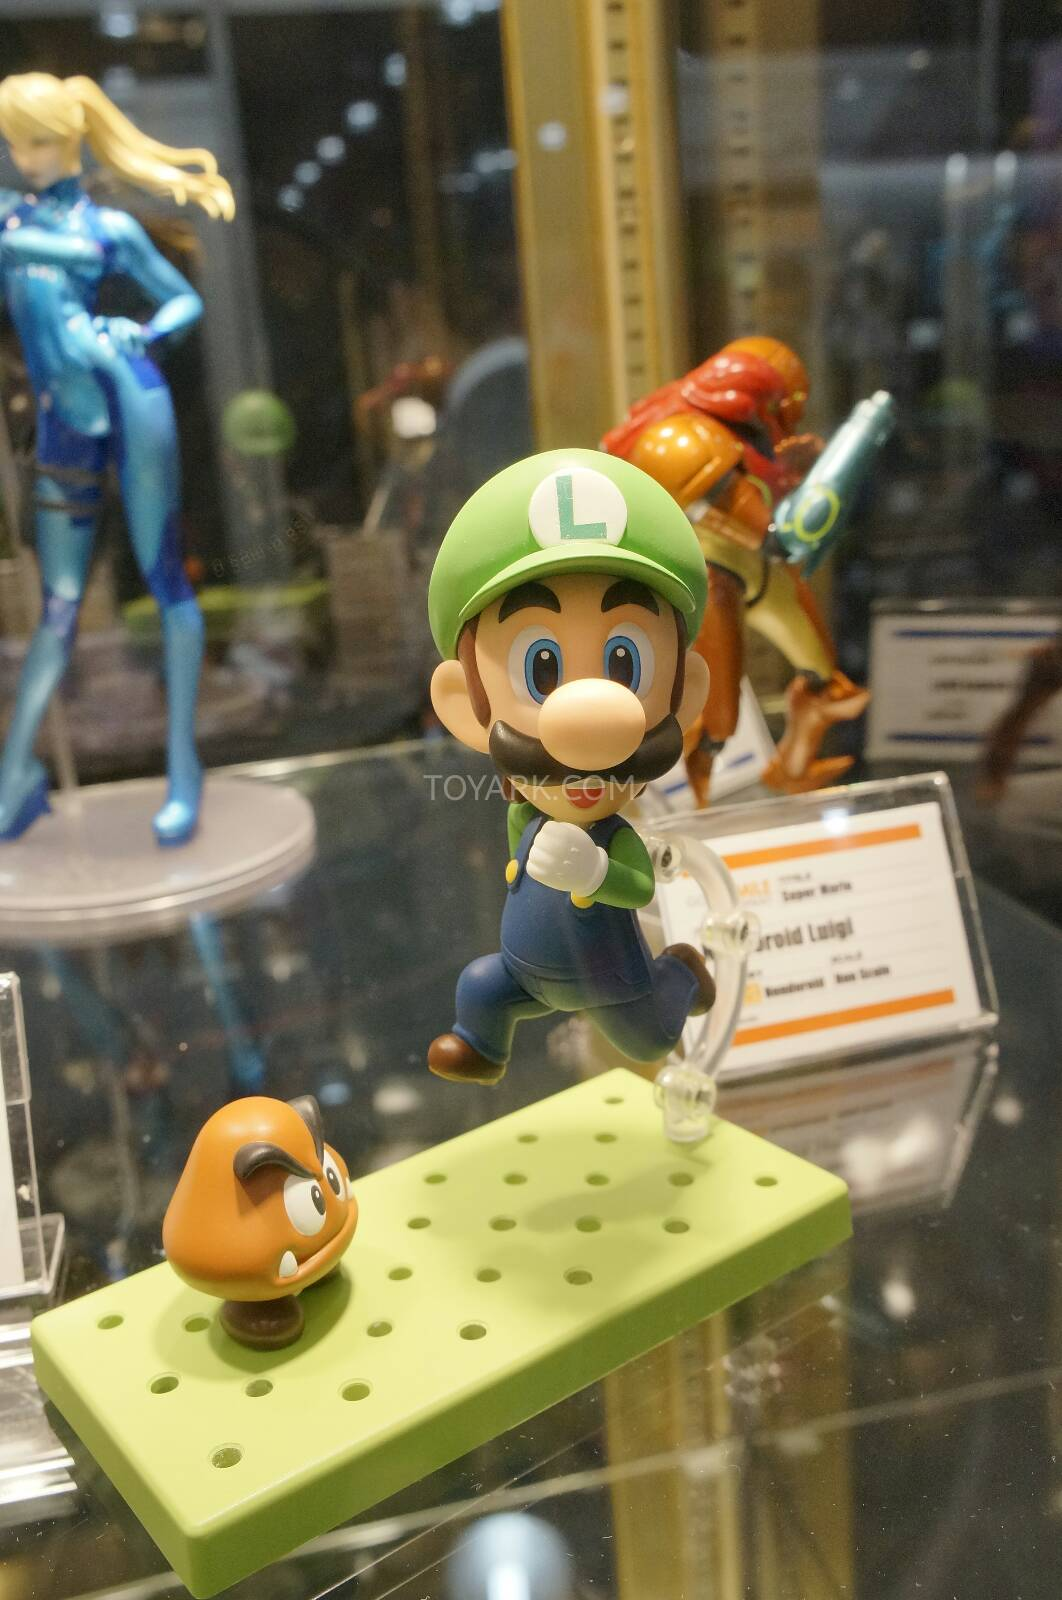 [EVENTO] Toy Fair 2014 - Good Smile Company / Max Factory / Phat Company / FREEing Toy-Fair-2014-Good-Smile-and-Max-Factory-Display-040